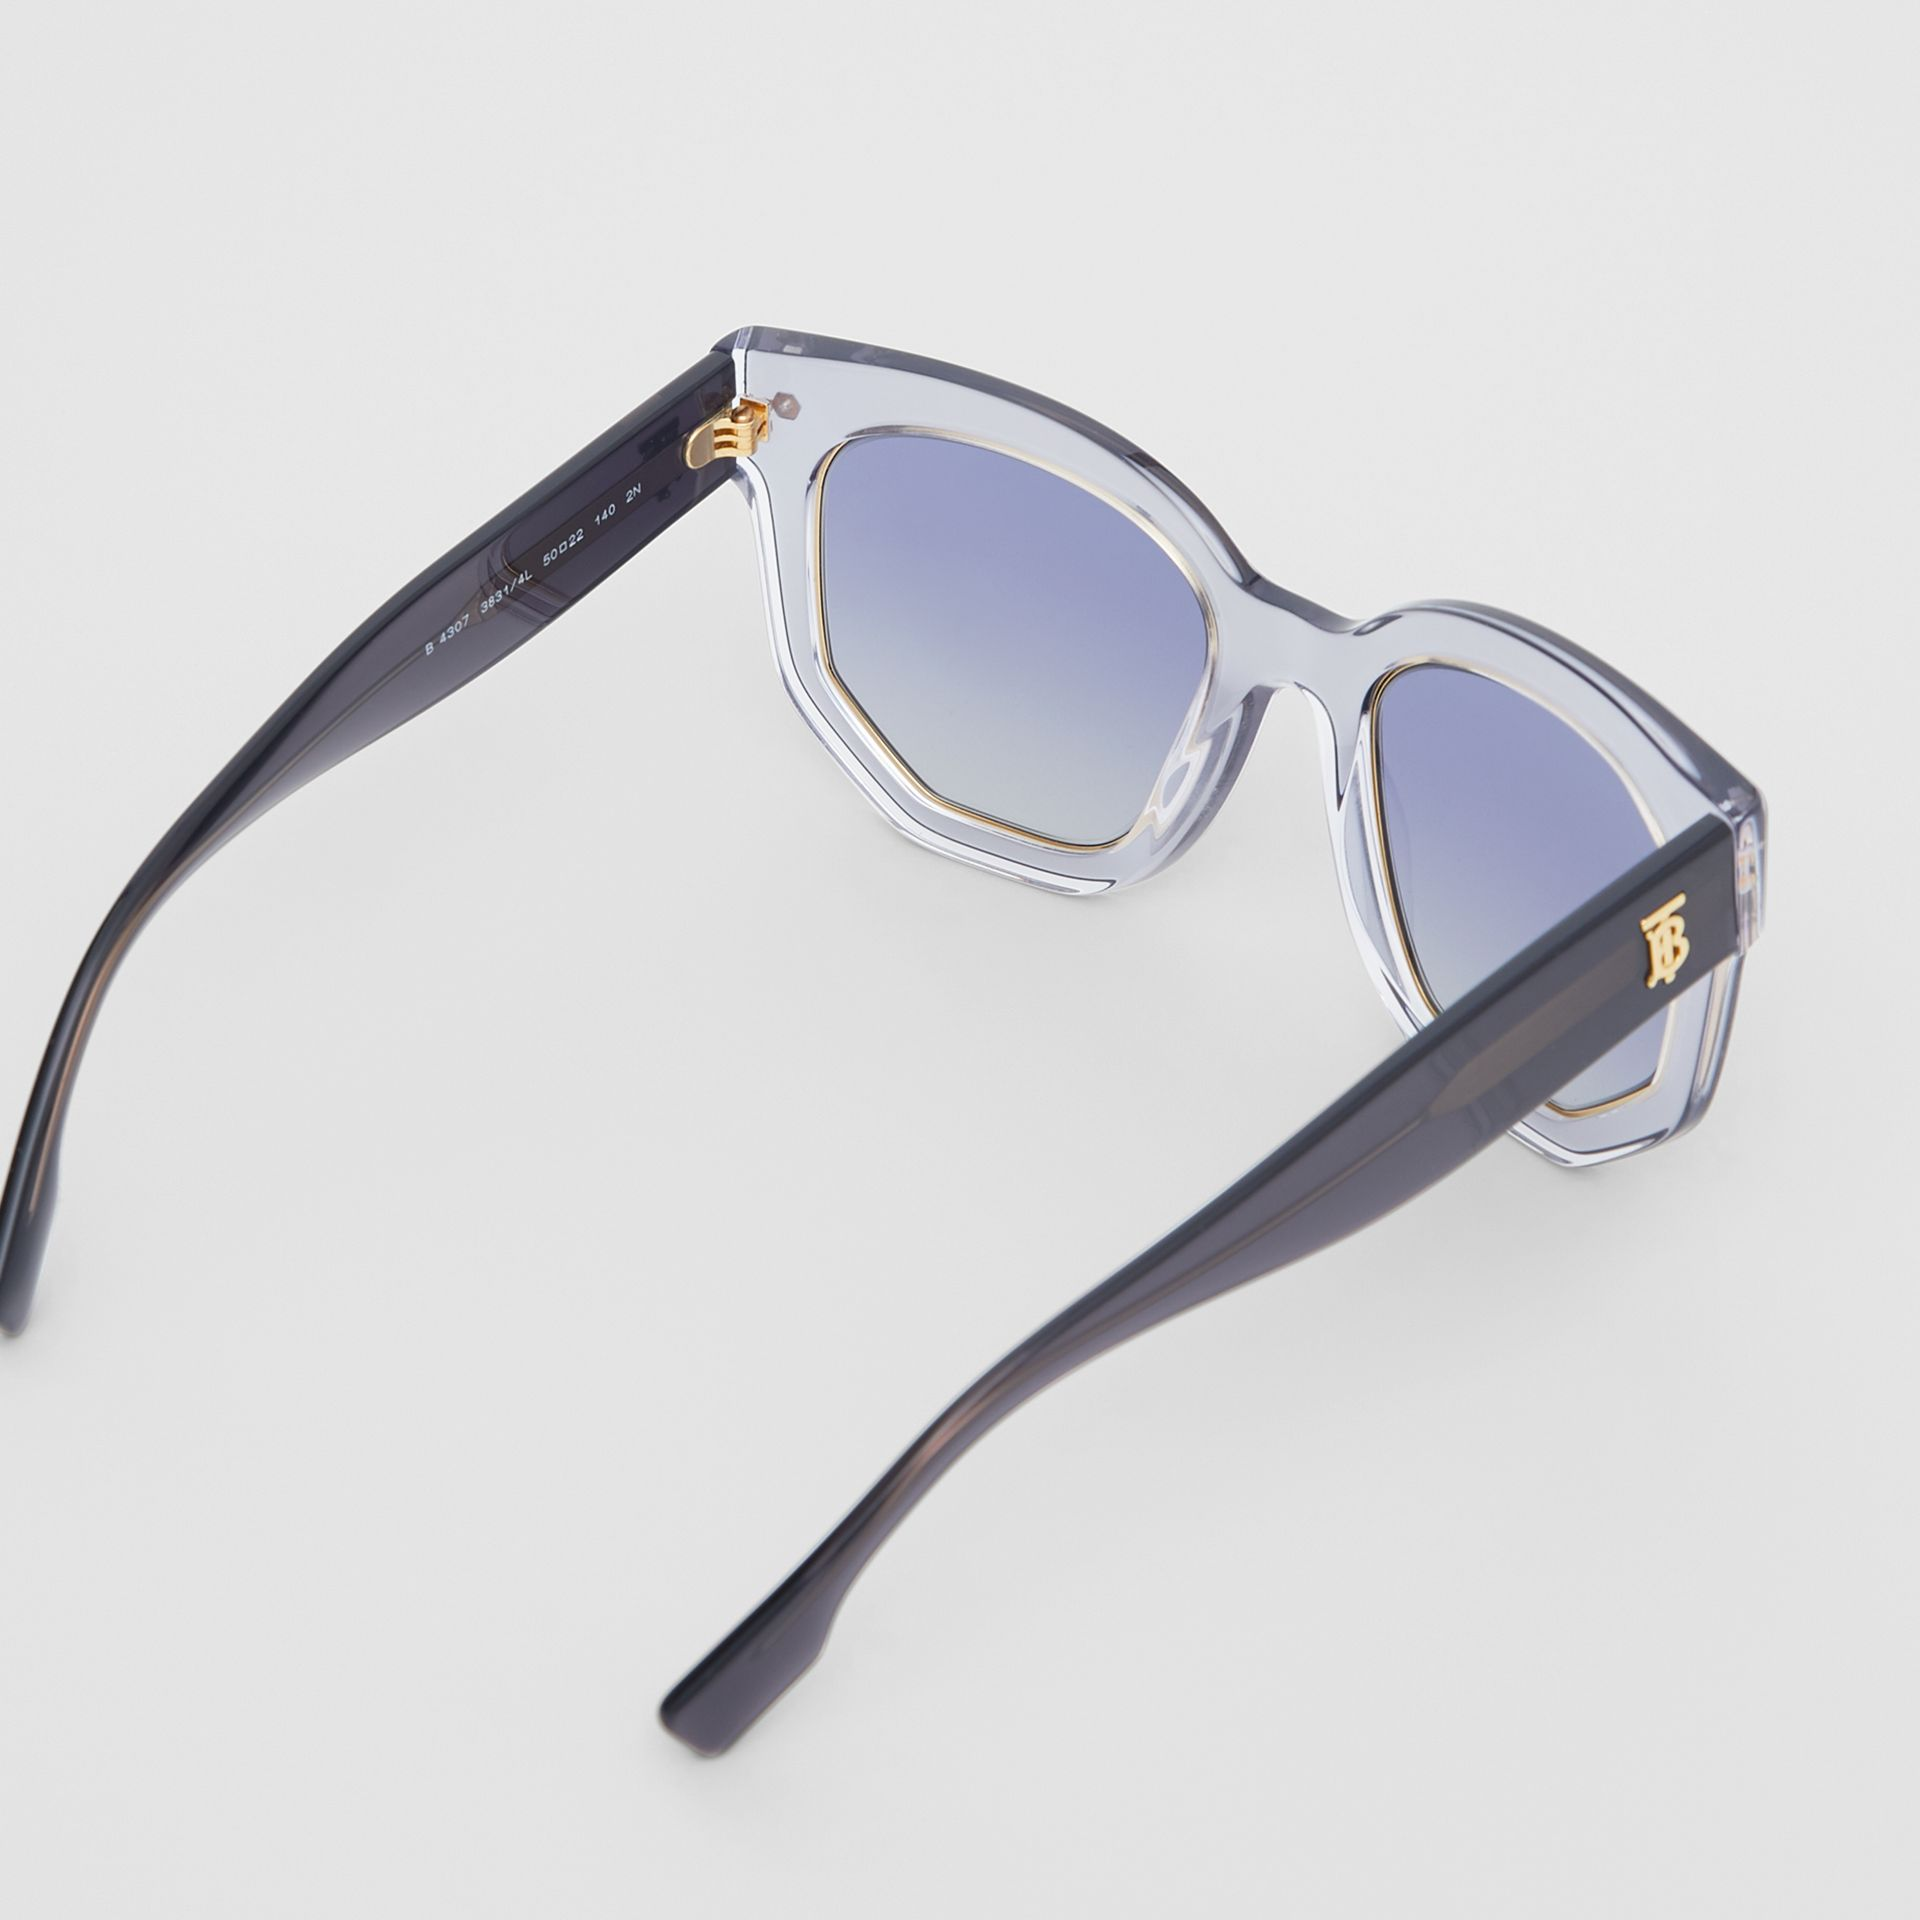 Geometric Frame Sunglasses in Grey - Women | Burberry - gallery image 4